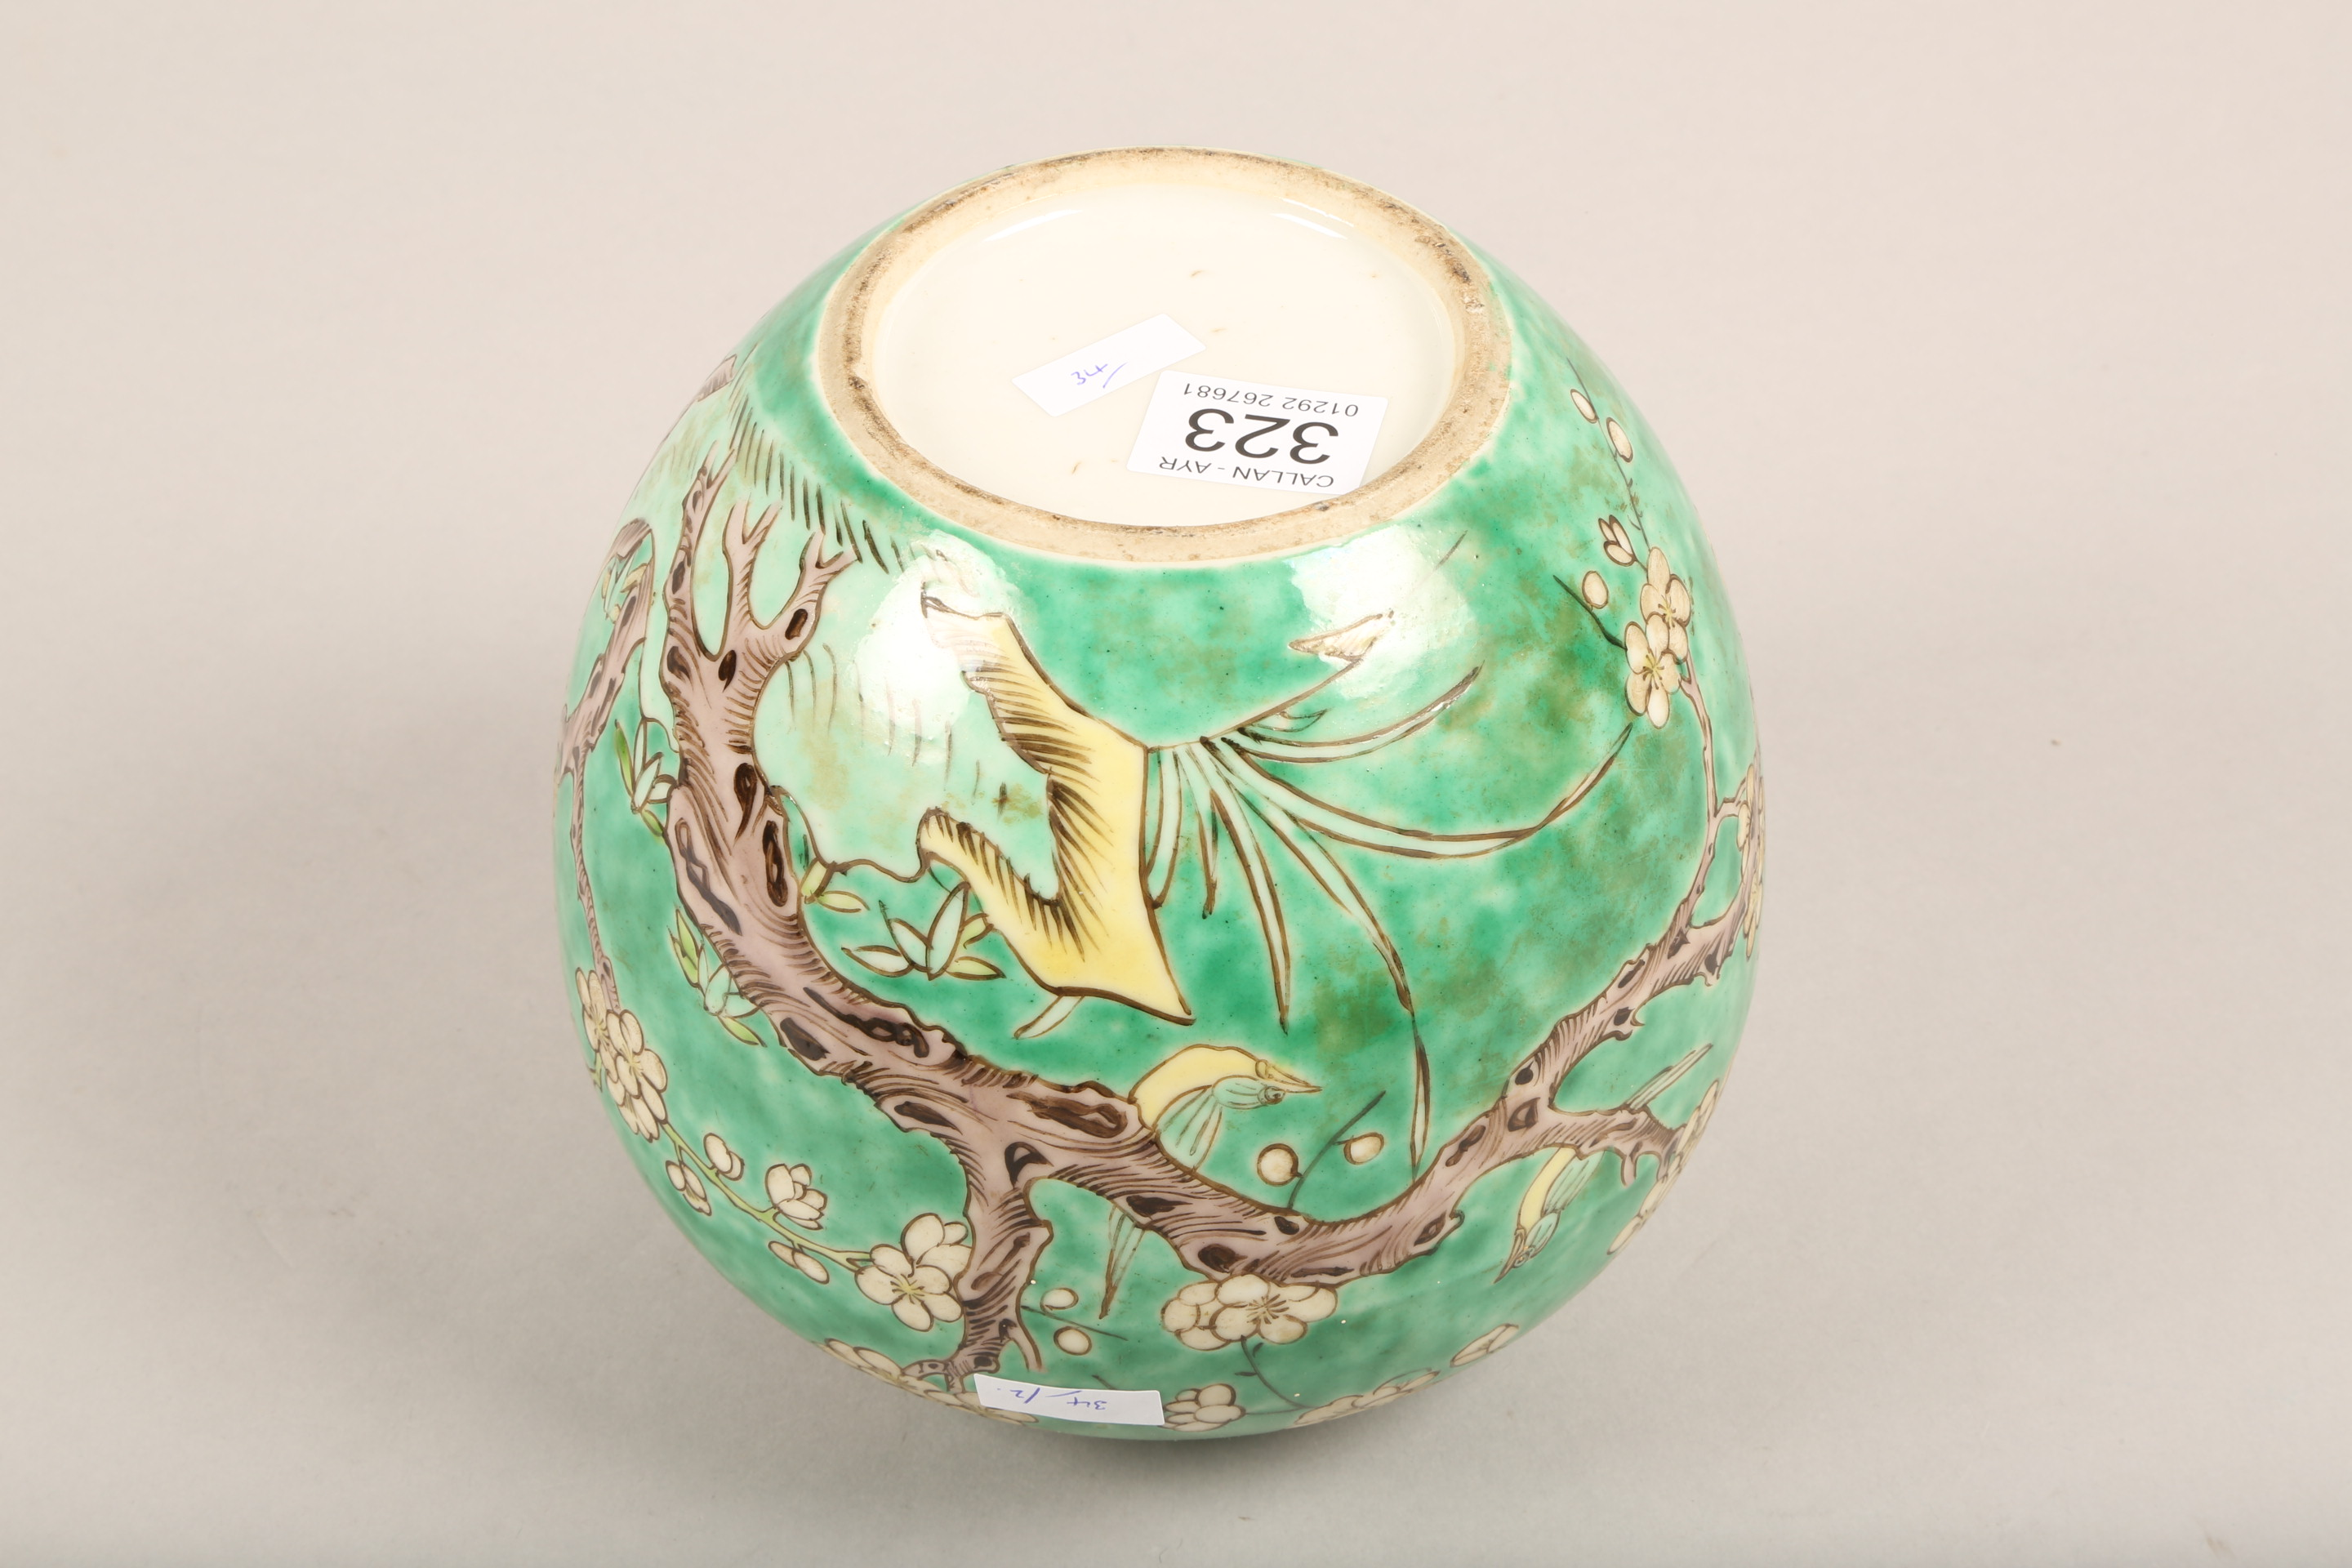 19th/20th century Chinese ginger jar and cover, green ground decorated with birds in a flowering - Image 4 of 6